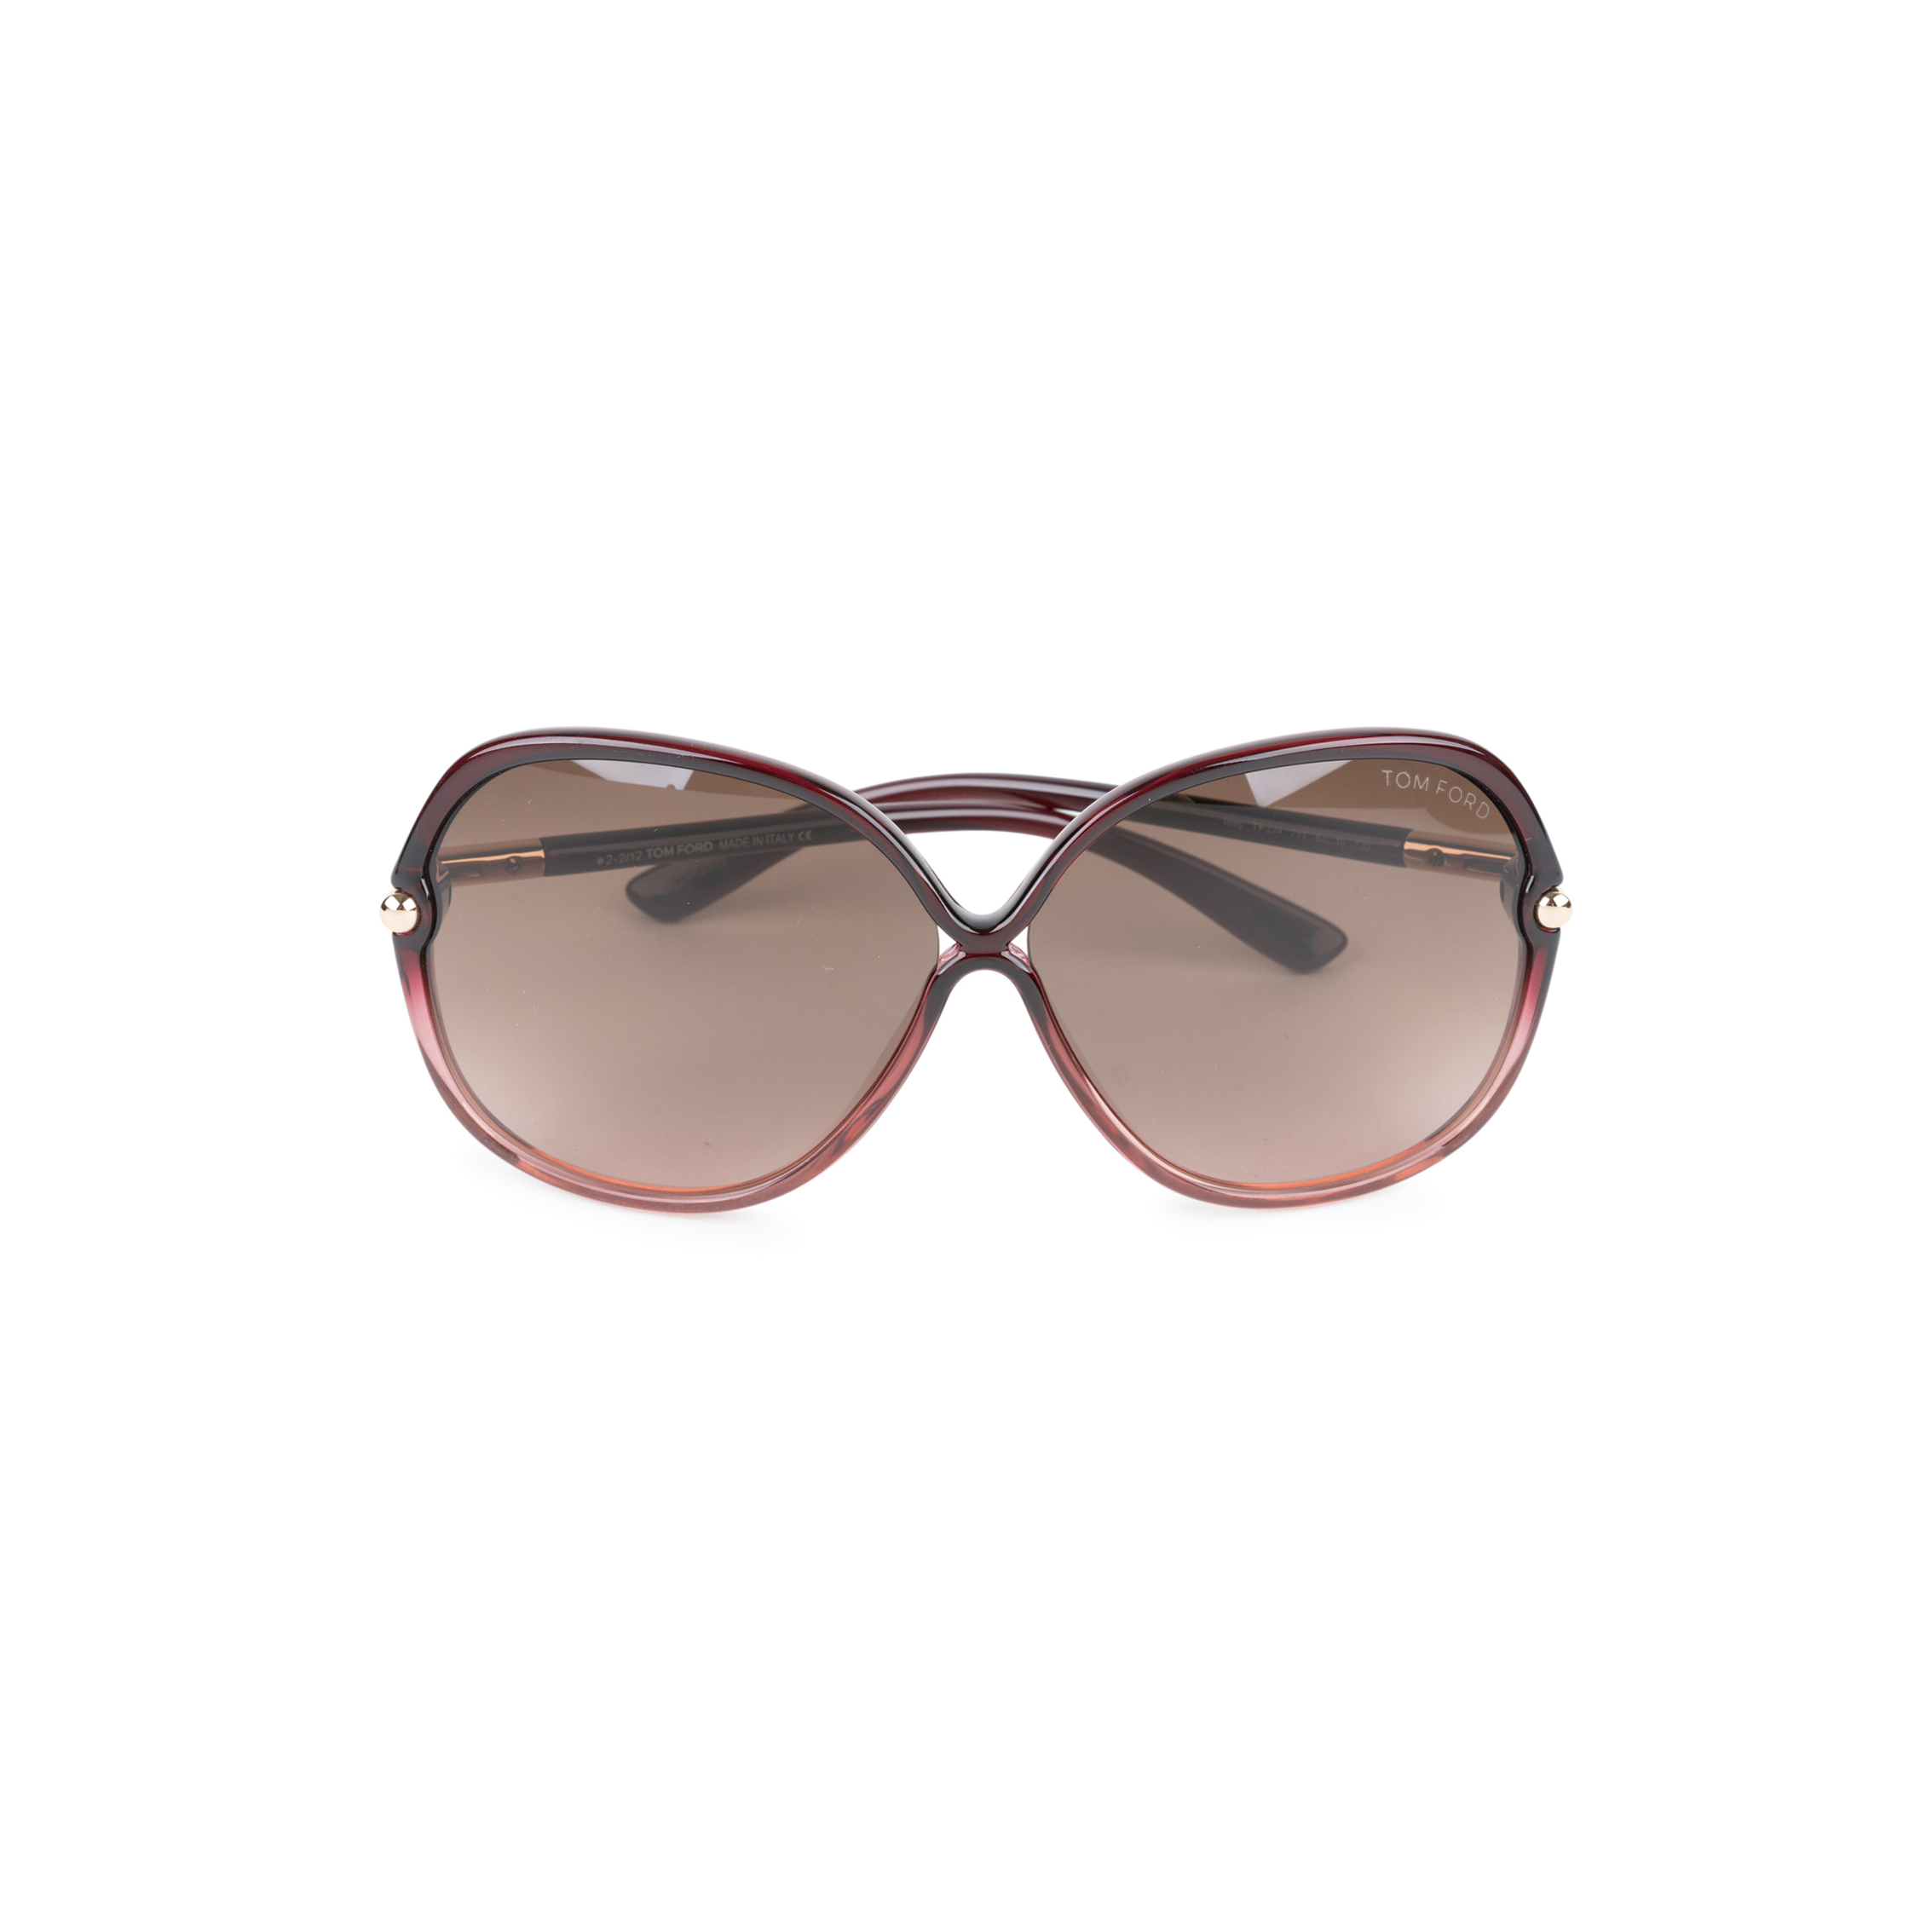 6b5674d0fa Authentic Second Hand Tom Ford Islay Sunglasses (PSS-590-00002 ...